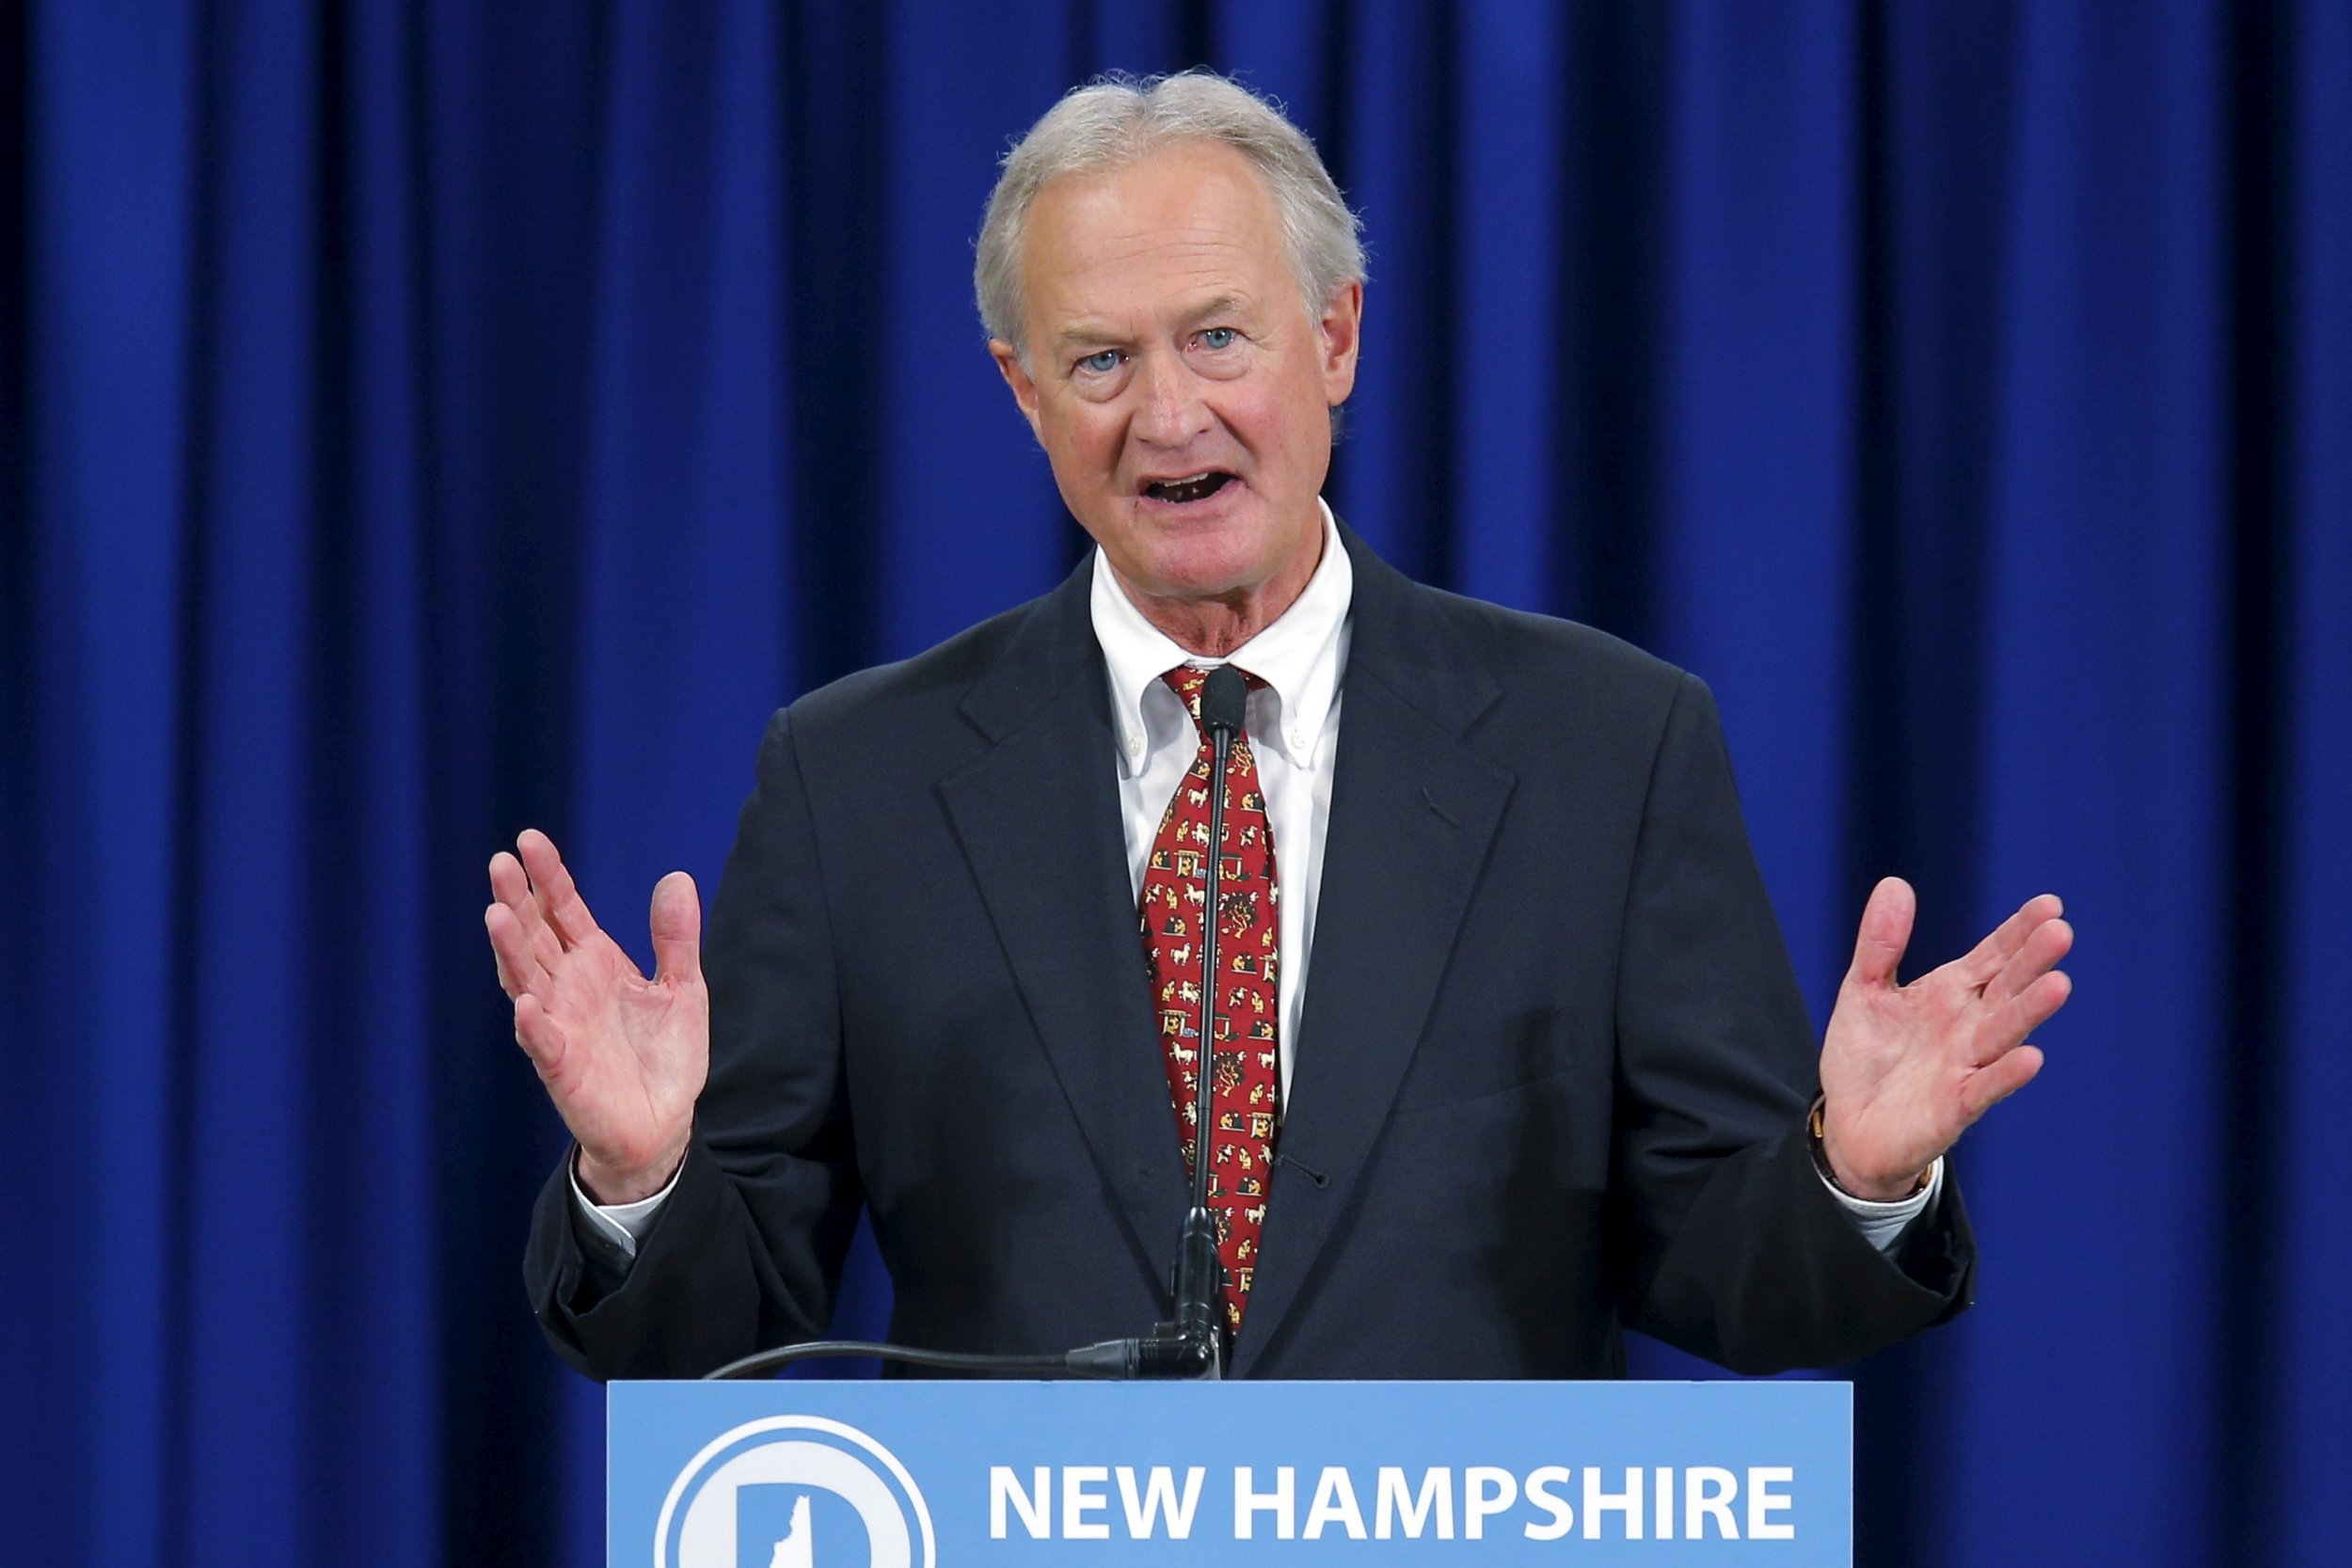 1023_Lincoln_Chafee_drops_out_01